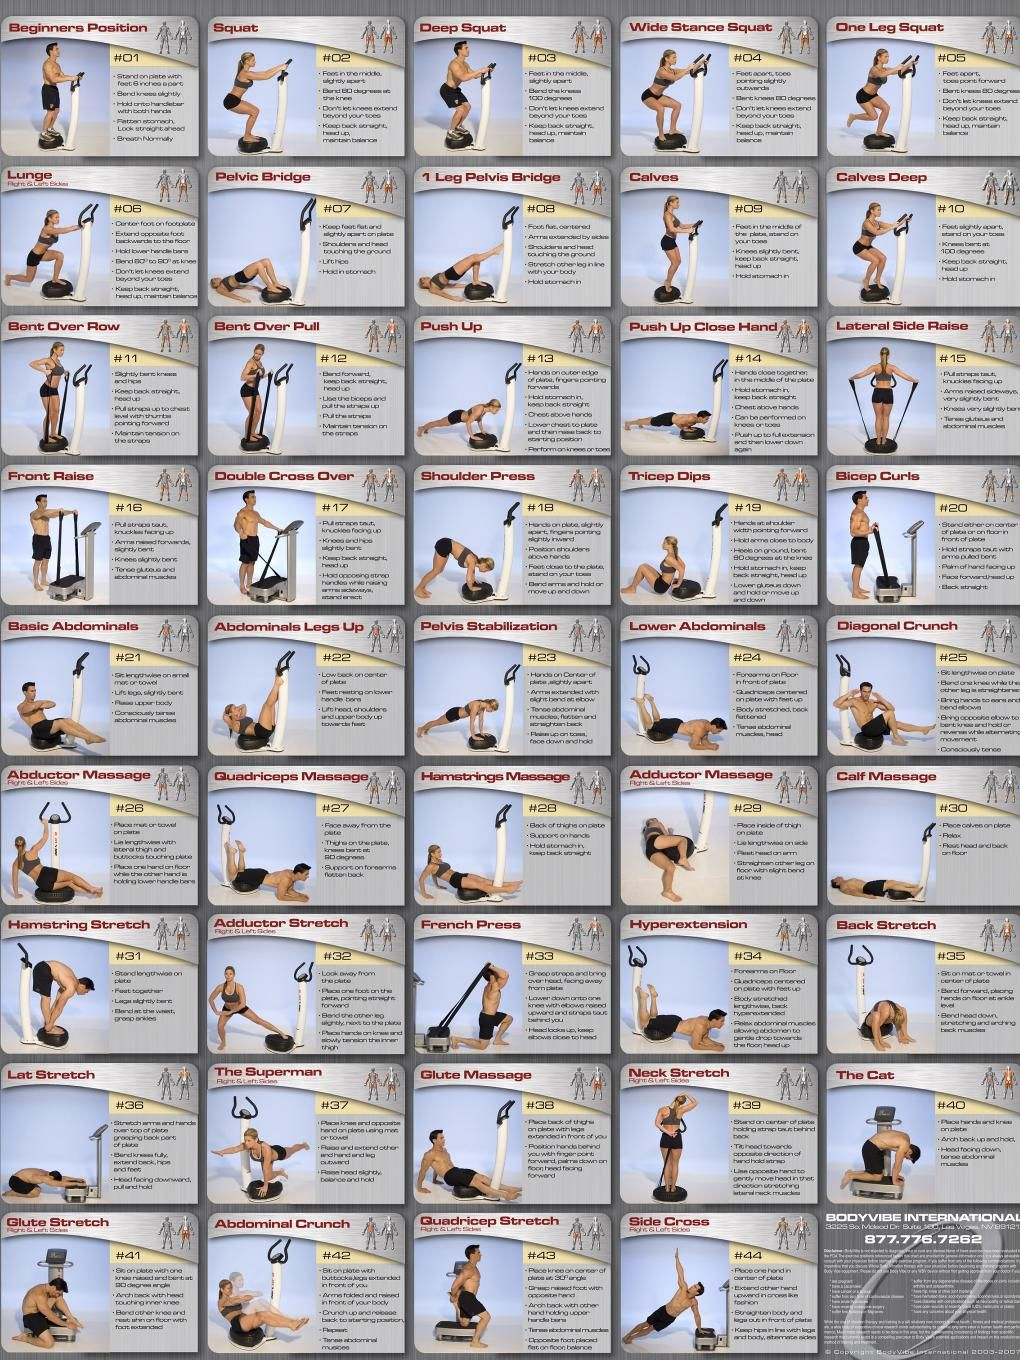 Vibefit whole body vibration exercise chart fitness diet health get also best exercises images rh pinterest